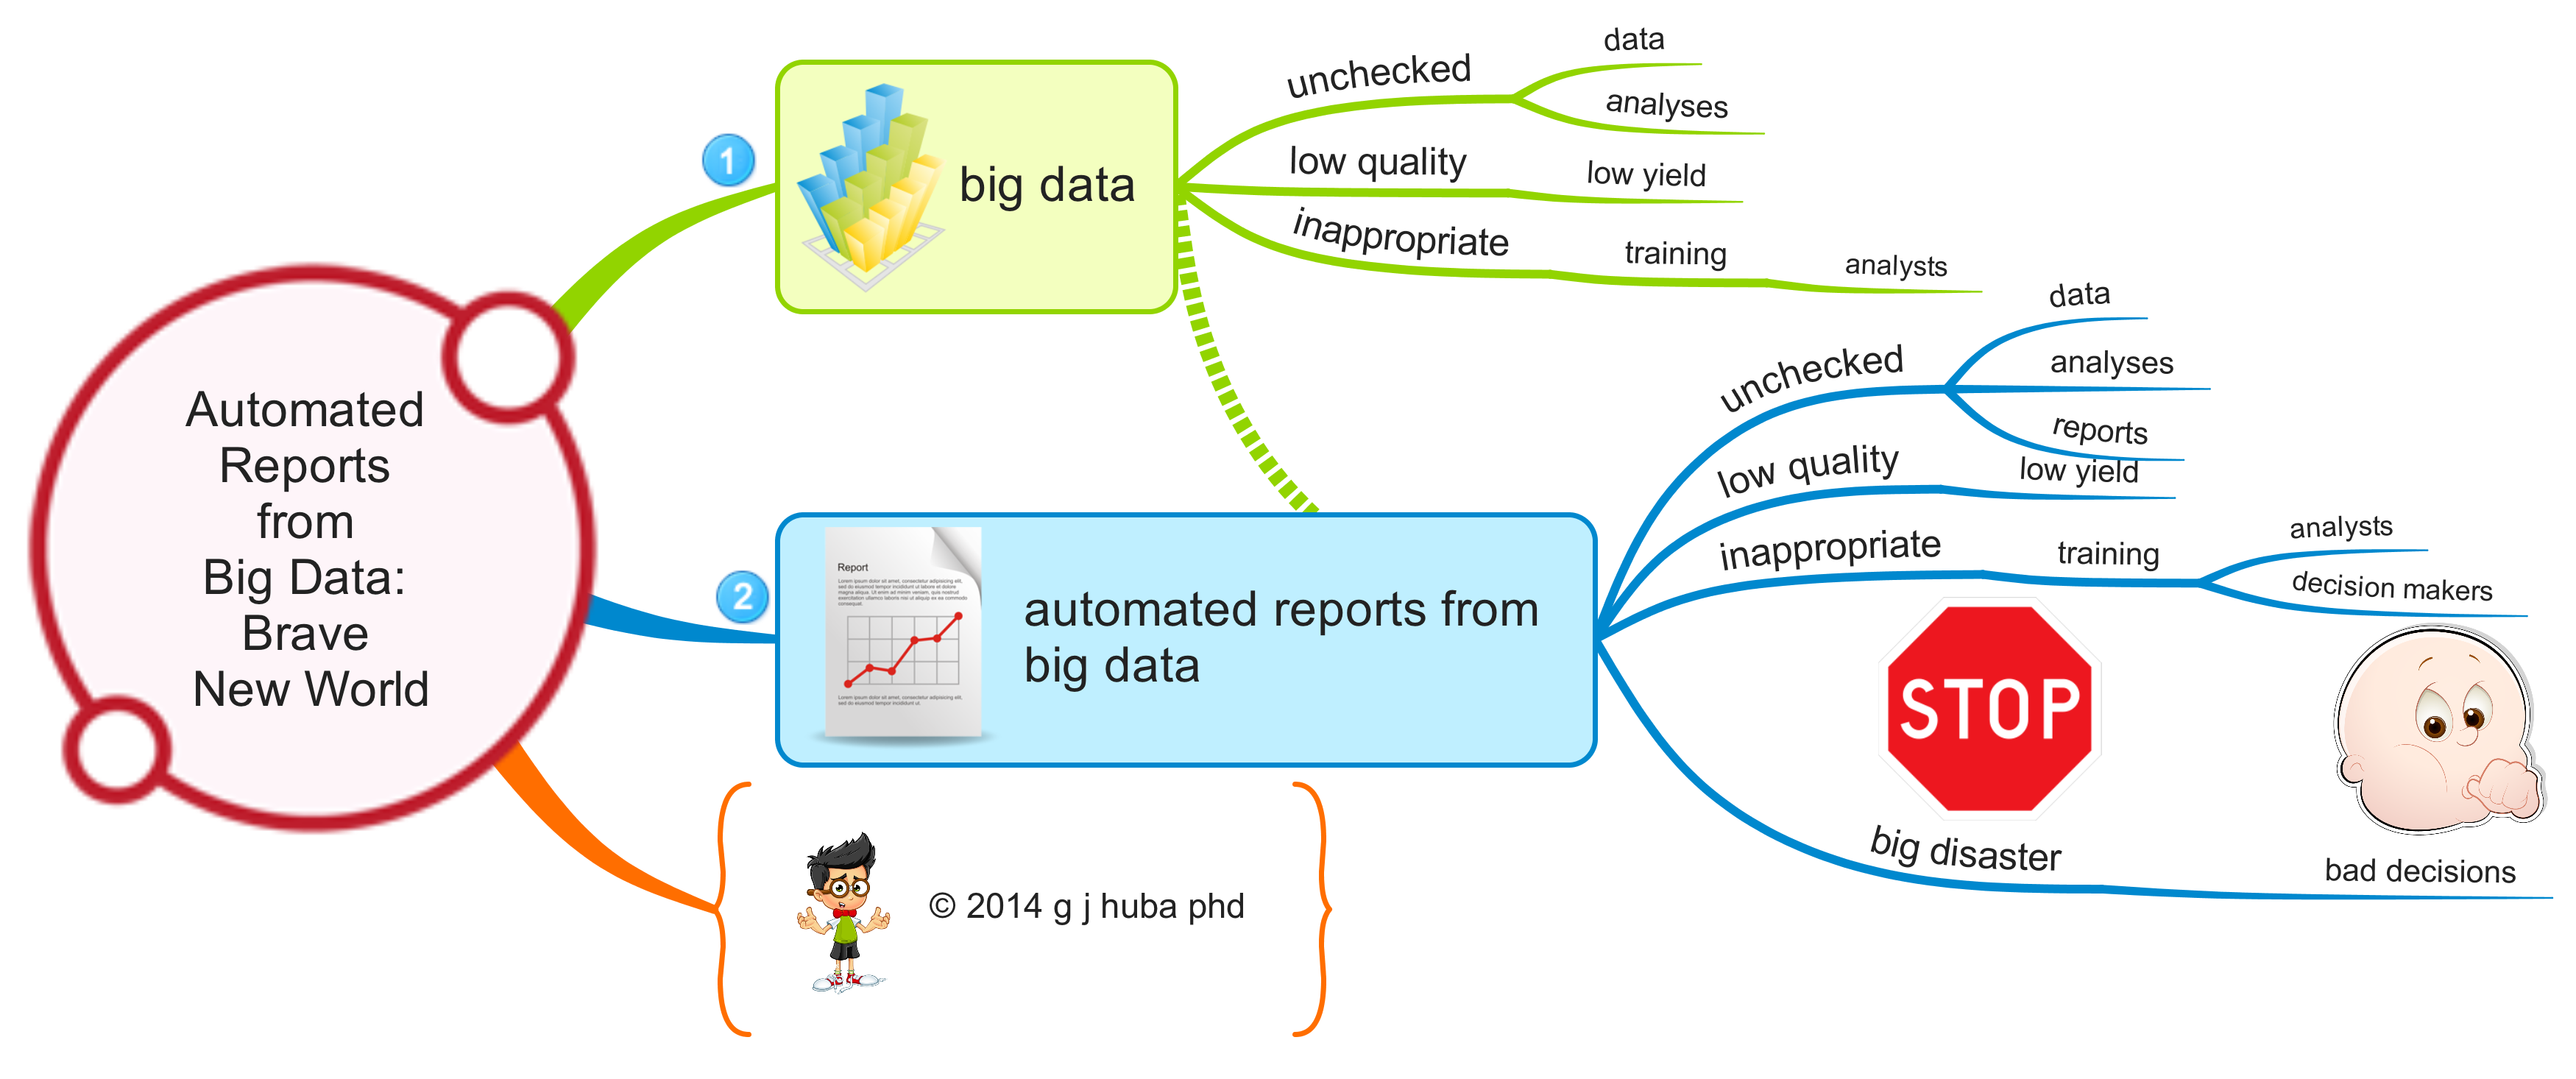 data scientist bloopers deleted director s cut automated reports from big data brave new world